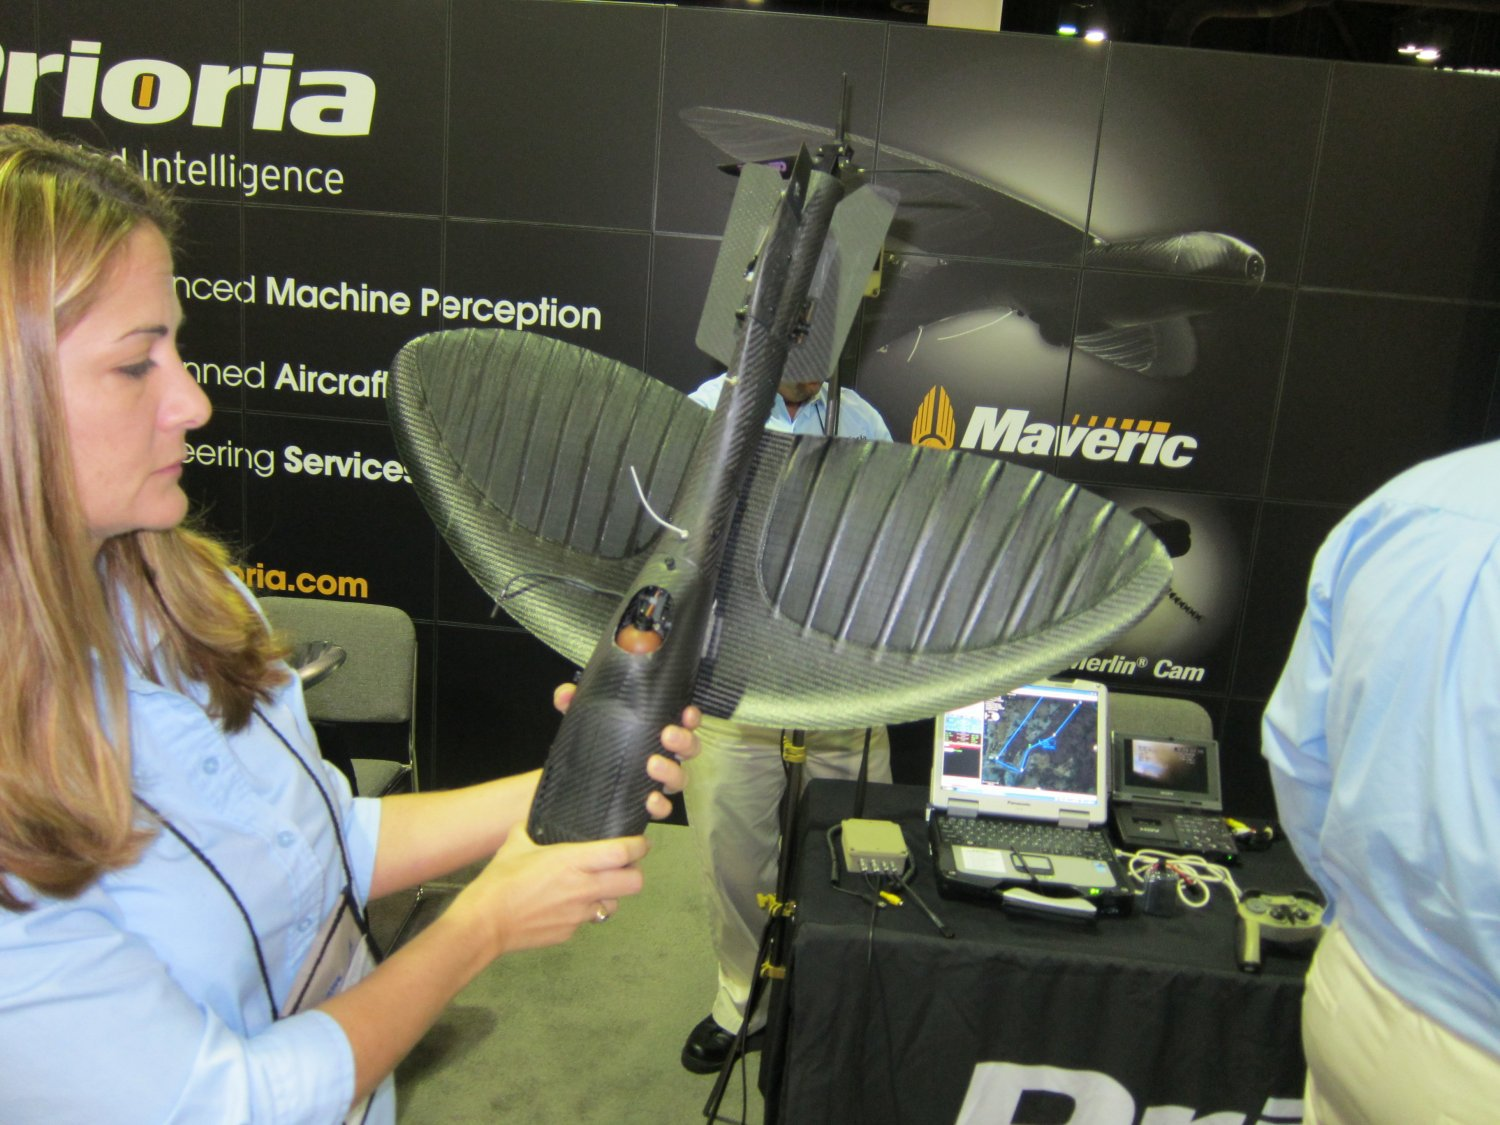 Prioria Robotics Maveric UAS Unmanned Aircraft System Flexible Bendable Wing Throwable SUAV Small Unmanned Aerial Vehicle C4ISR SOFIC 2011 10 <!  :en  >Prioria Robotics Maveric Flexible Wing Mini UAS (Mini Unmanned Aircraft System) at SOFIC 2011: Manpackable, Throwable SUAV (Small Unmanned Aerial Vehicle) with Flexible/Bendable Wing! (Photos and Video!) <!  :  >